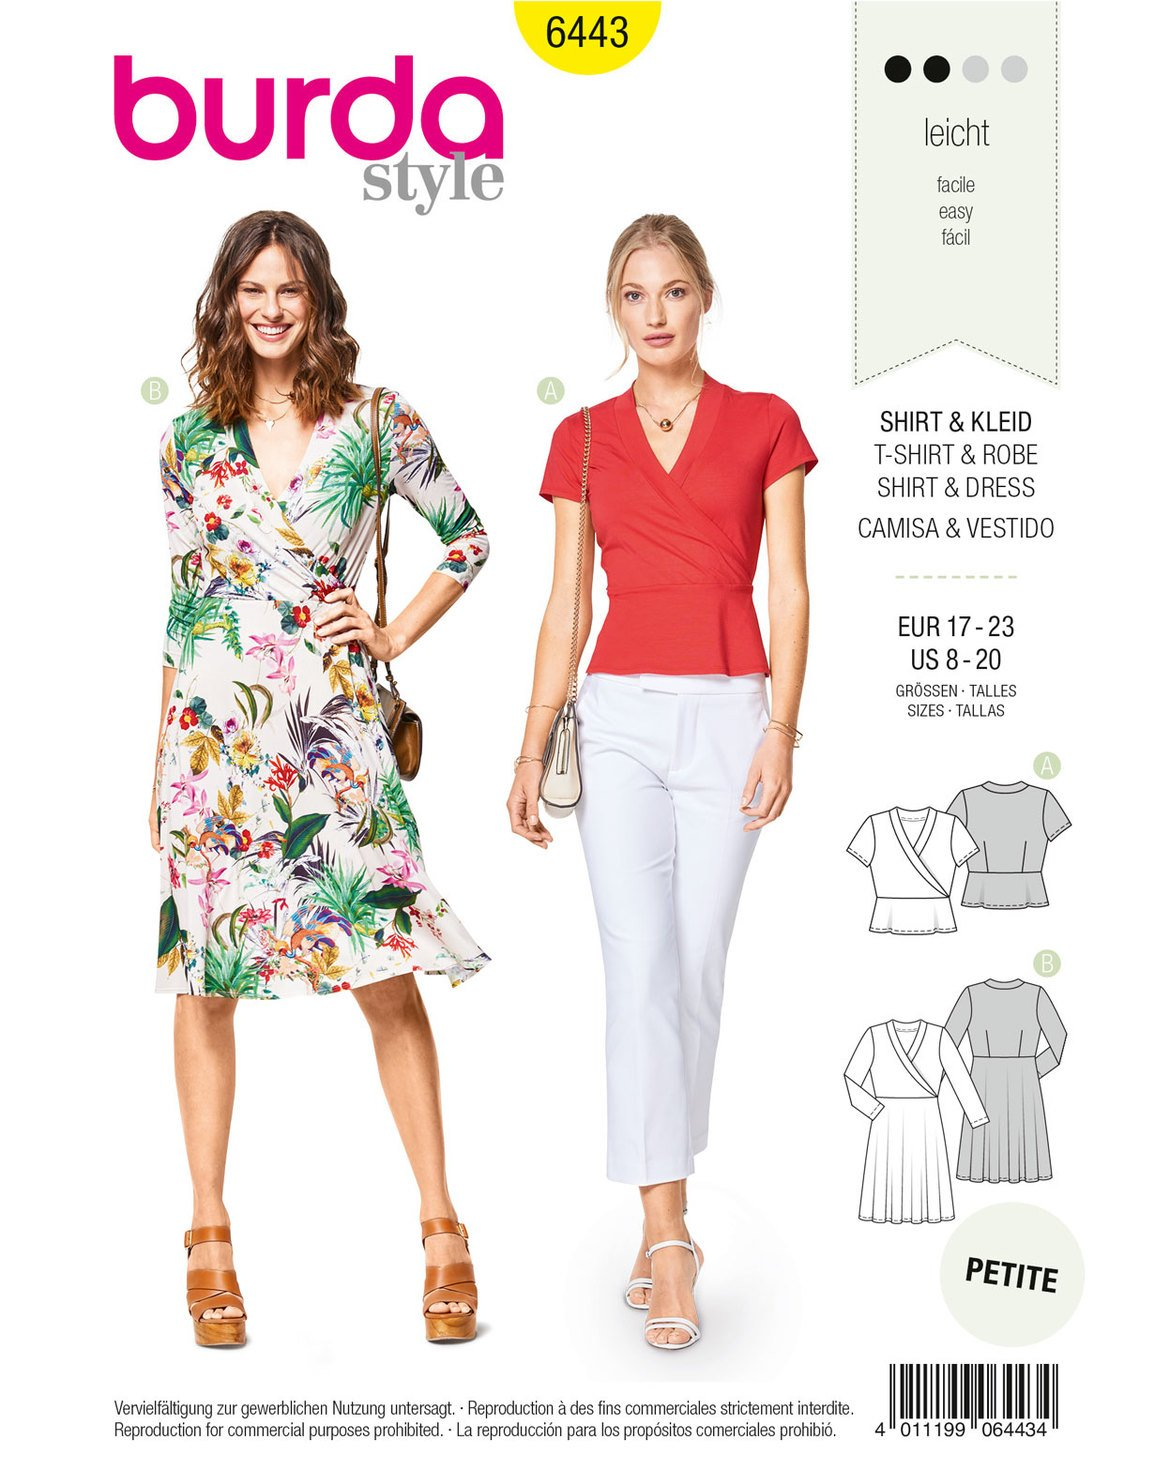 50cc2a0a24ba Amazon.com: Burda Style Sewing Pattern B6443 - Misses' Jersey Dresses, A(8 -10-12-14-16-18-20): Arts, Crafts & Sewing